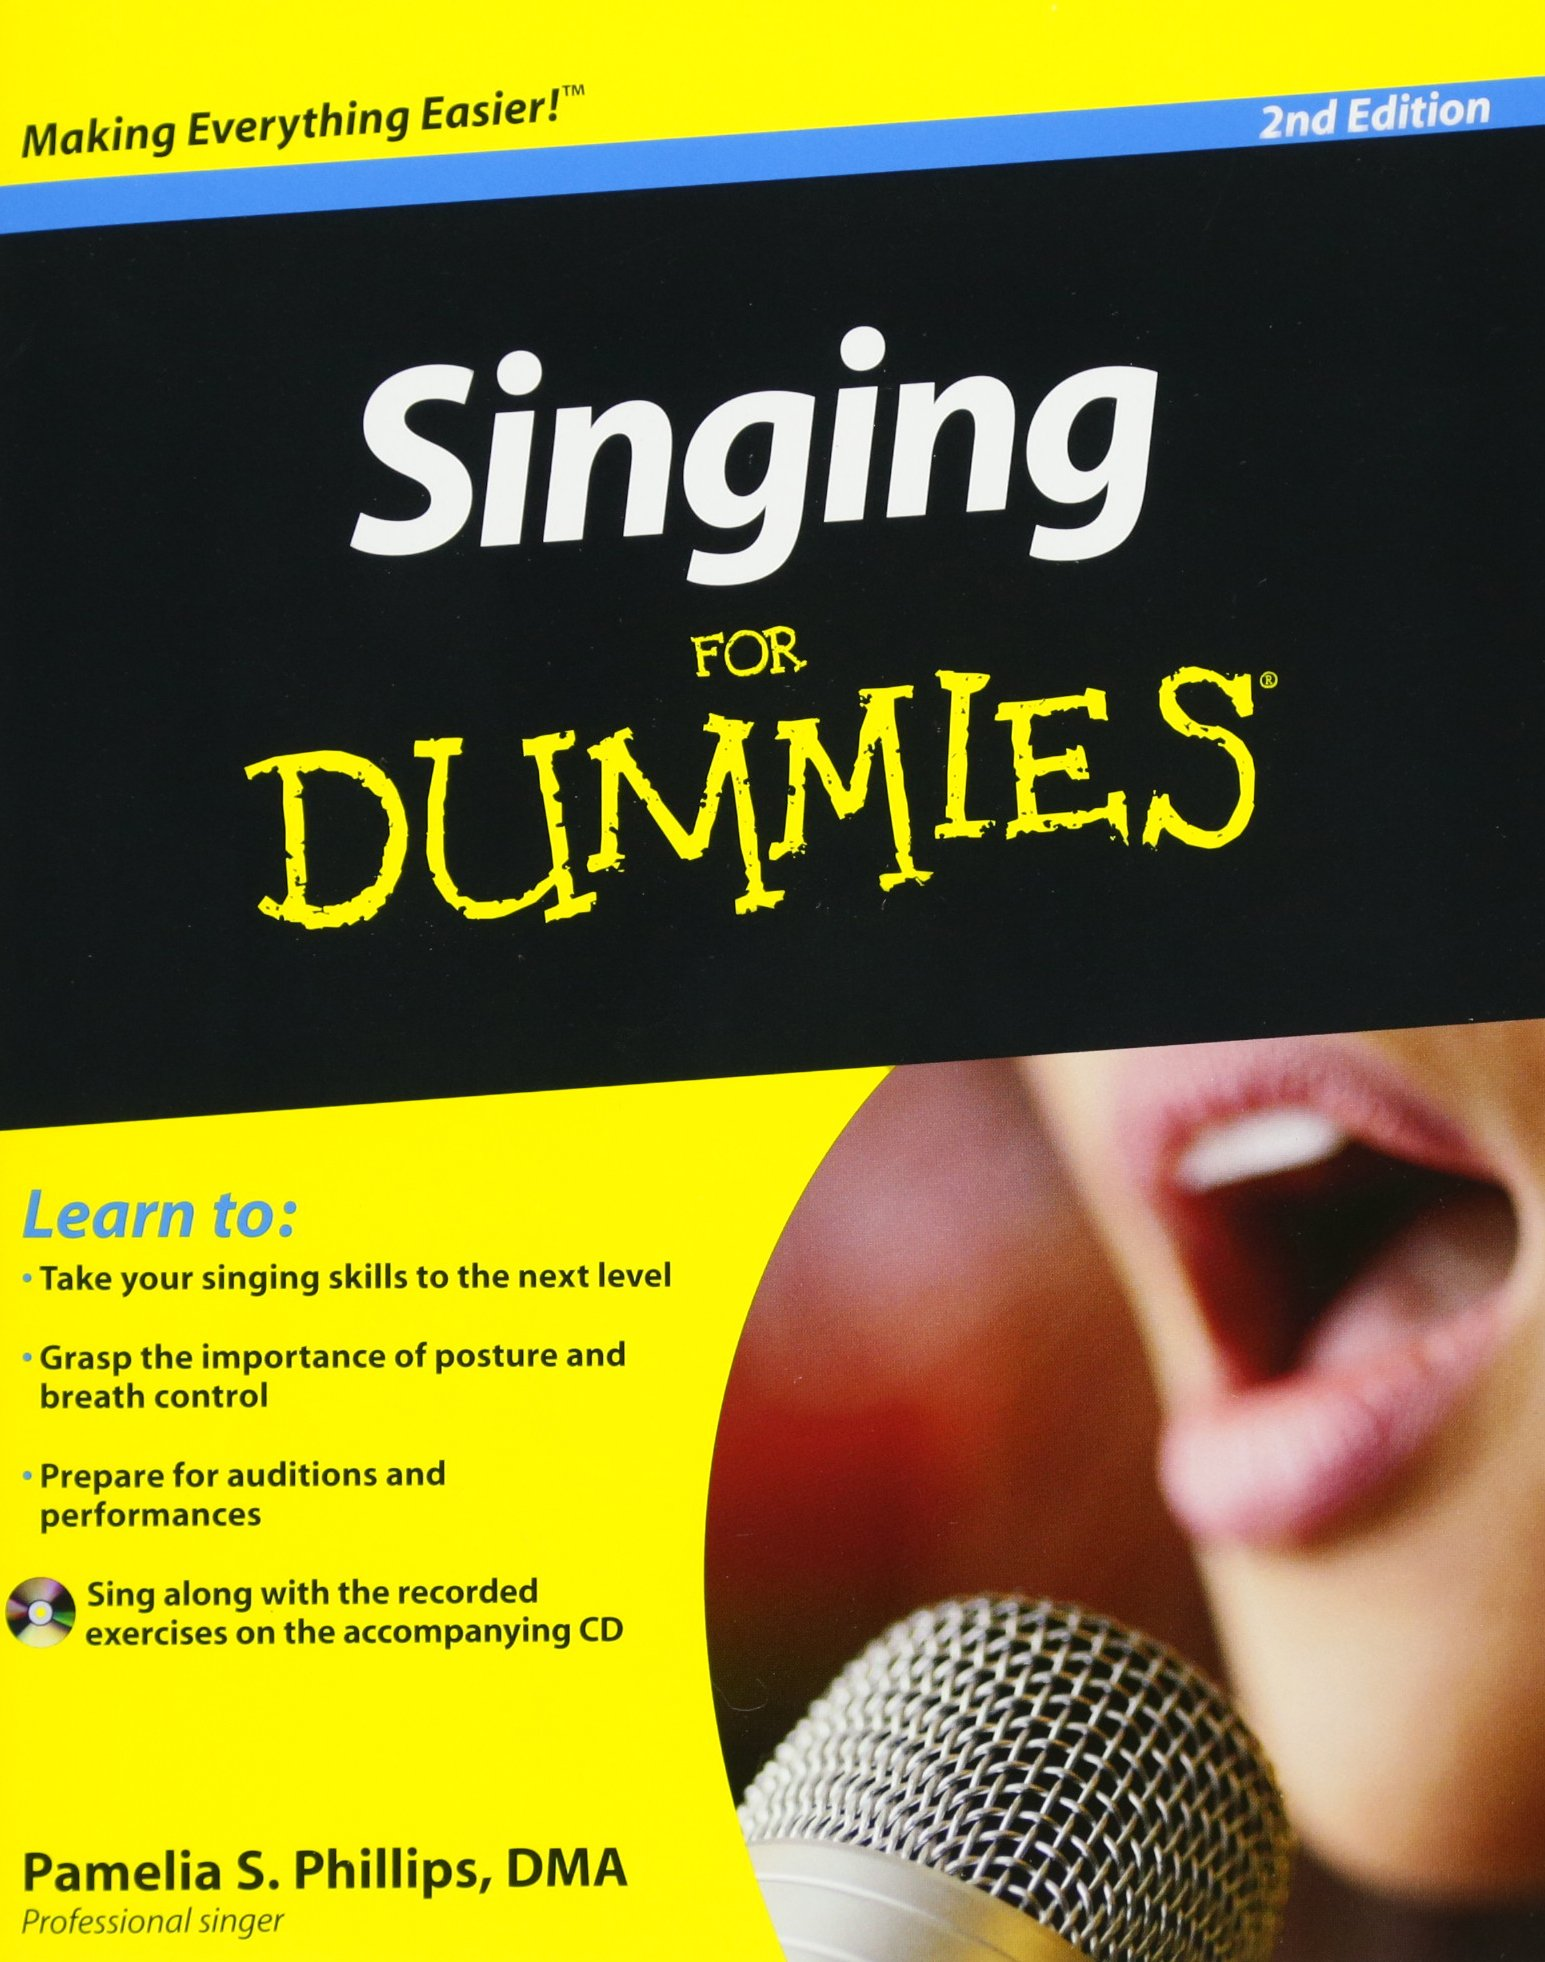 Literature craft and voice 2nd edition - Singing For Dummies Pamelia S Phillips 9780764524752 Amazon Com Books